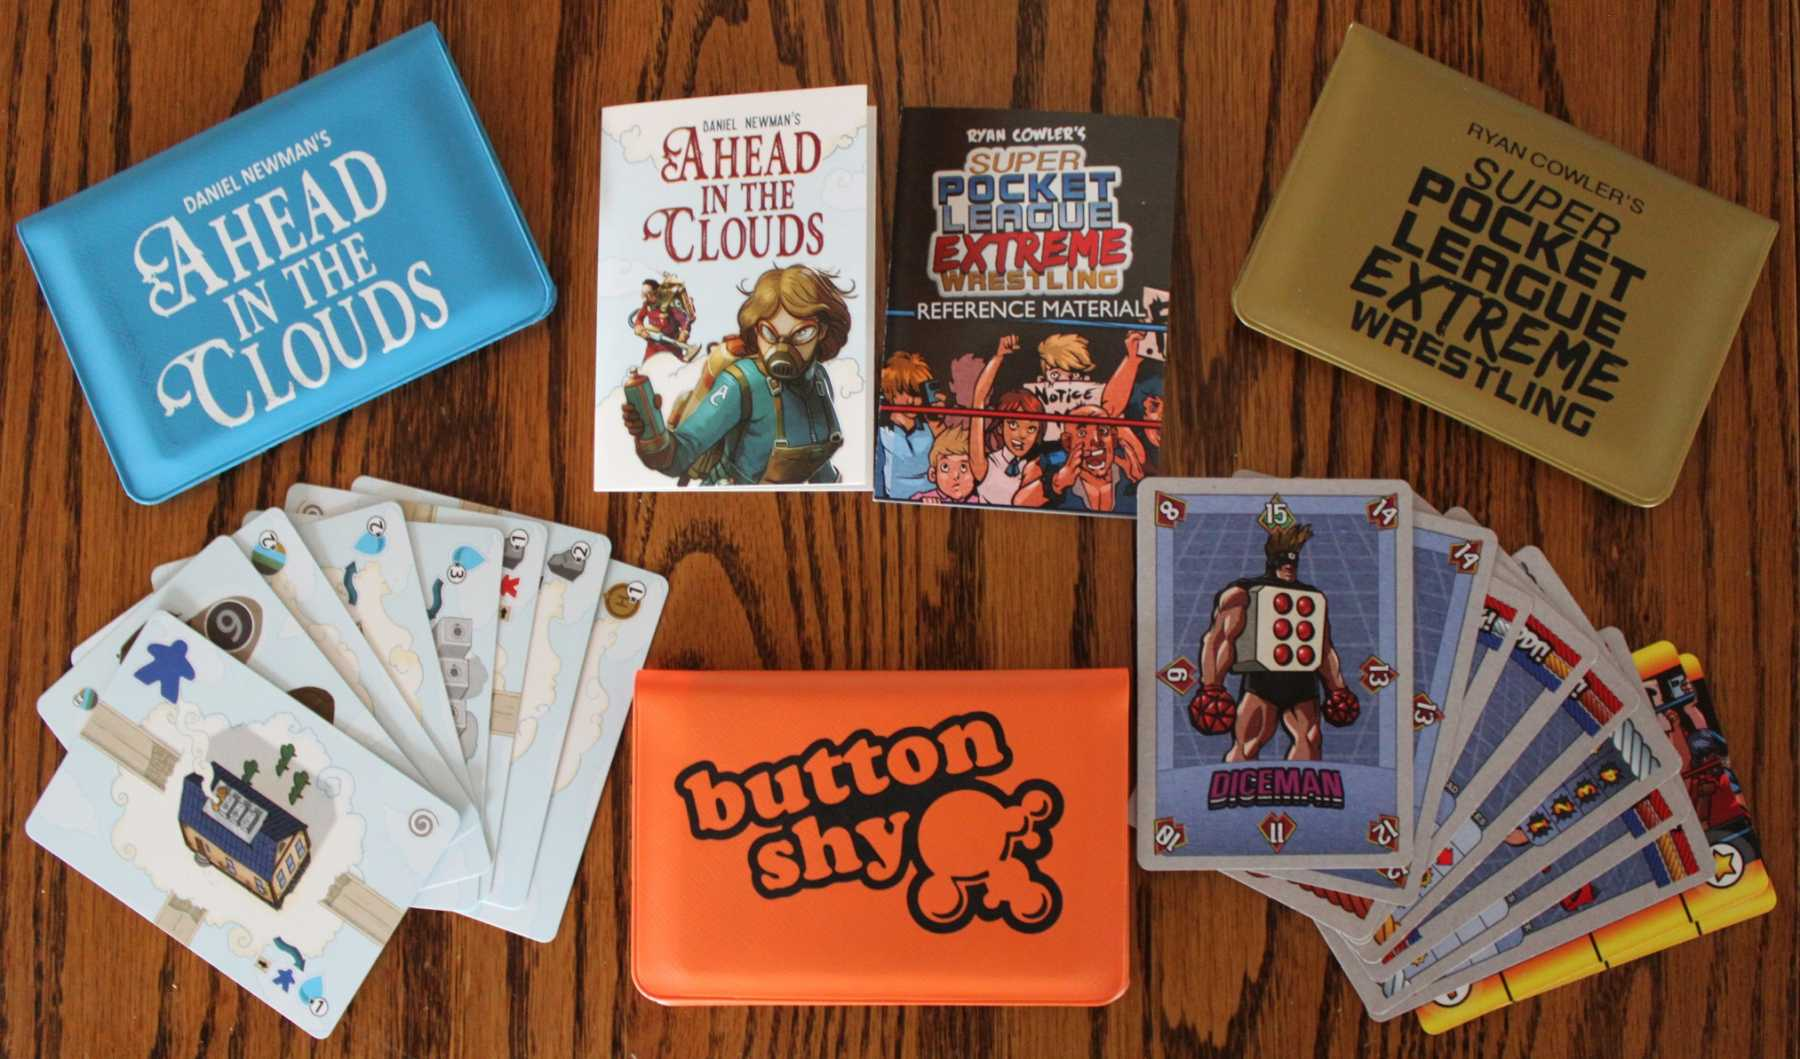 Play Games On The Go With Button Shy Games Wallet Series | Button Shy